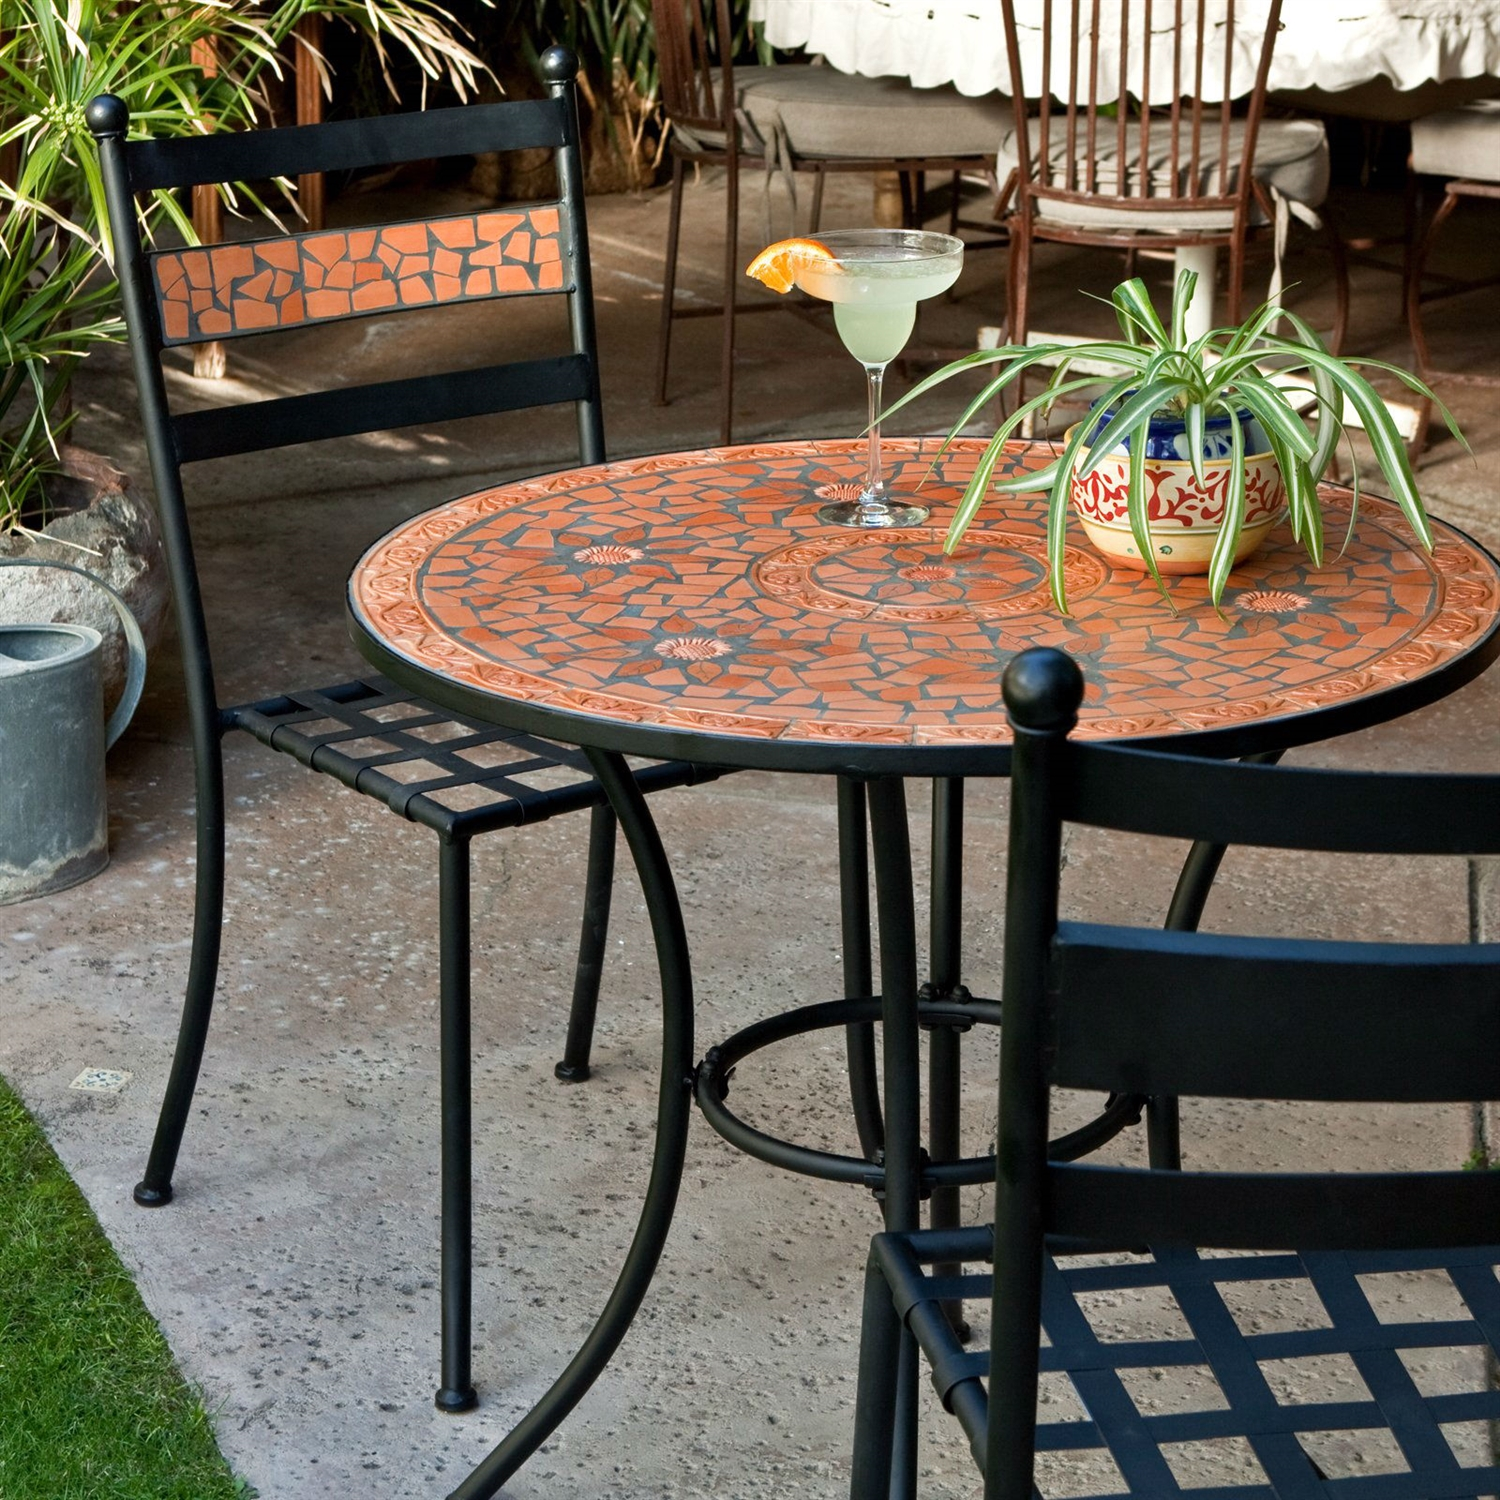 Bistro Sets 3-piece black metal patio bistro set with terra cotta tiles MRXCRMD